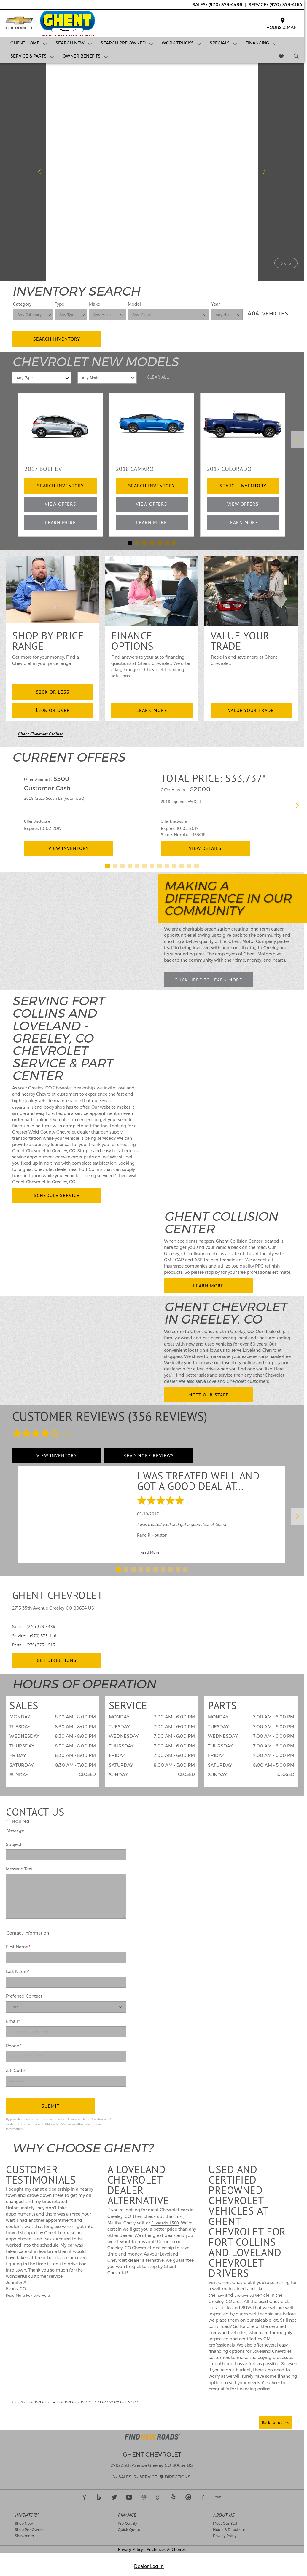 Ghent Chevrolet Website History